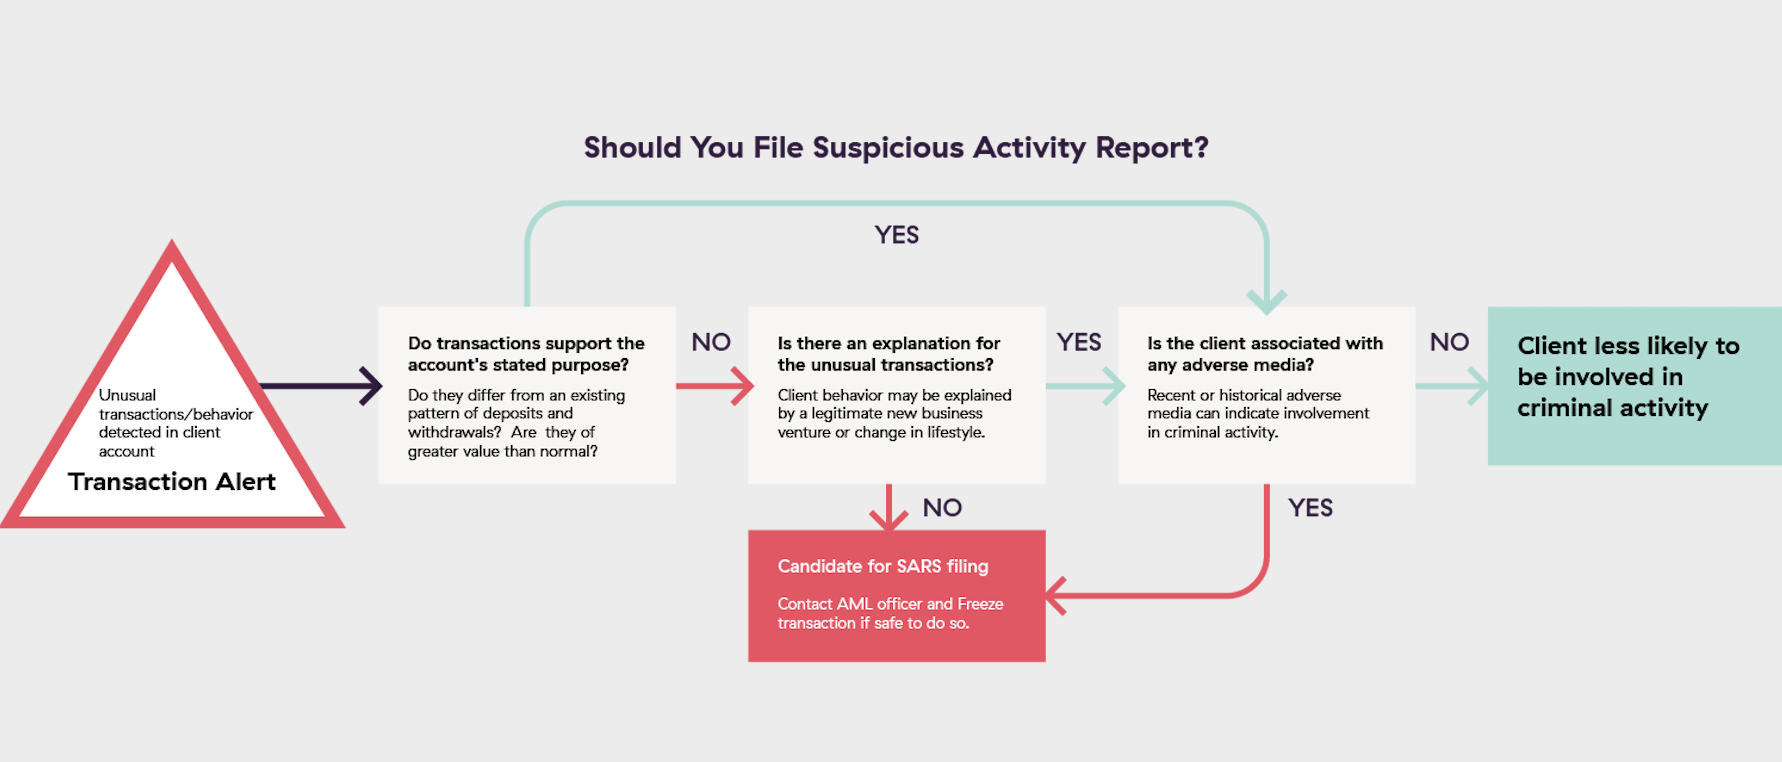 Suspicious Activity Reporting SARS filing